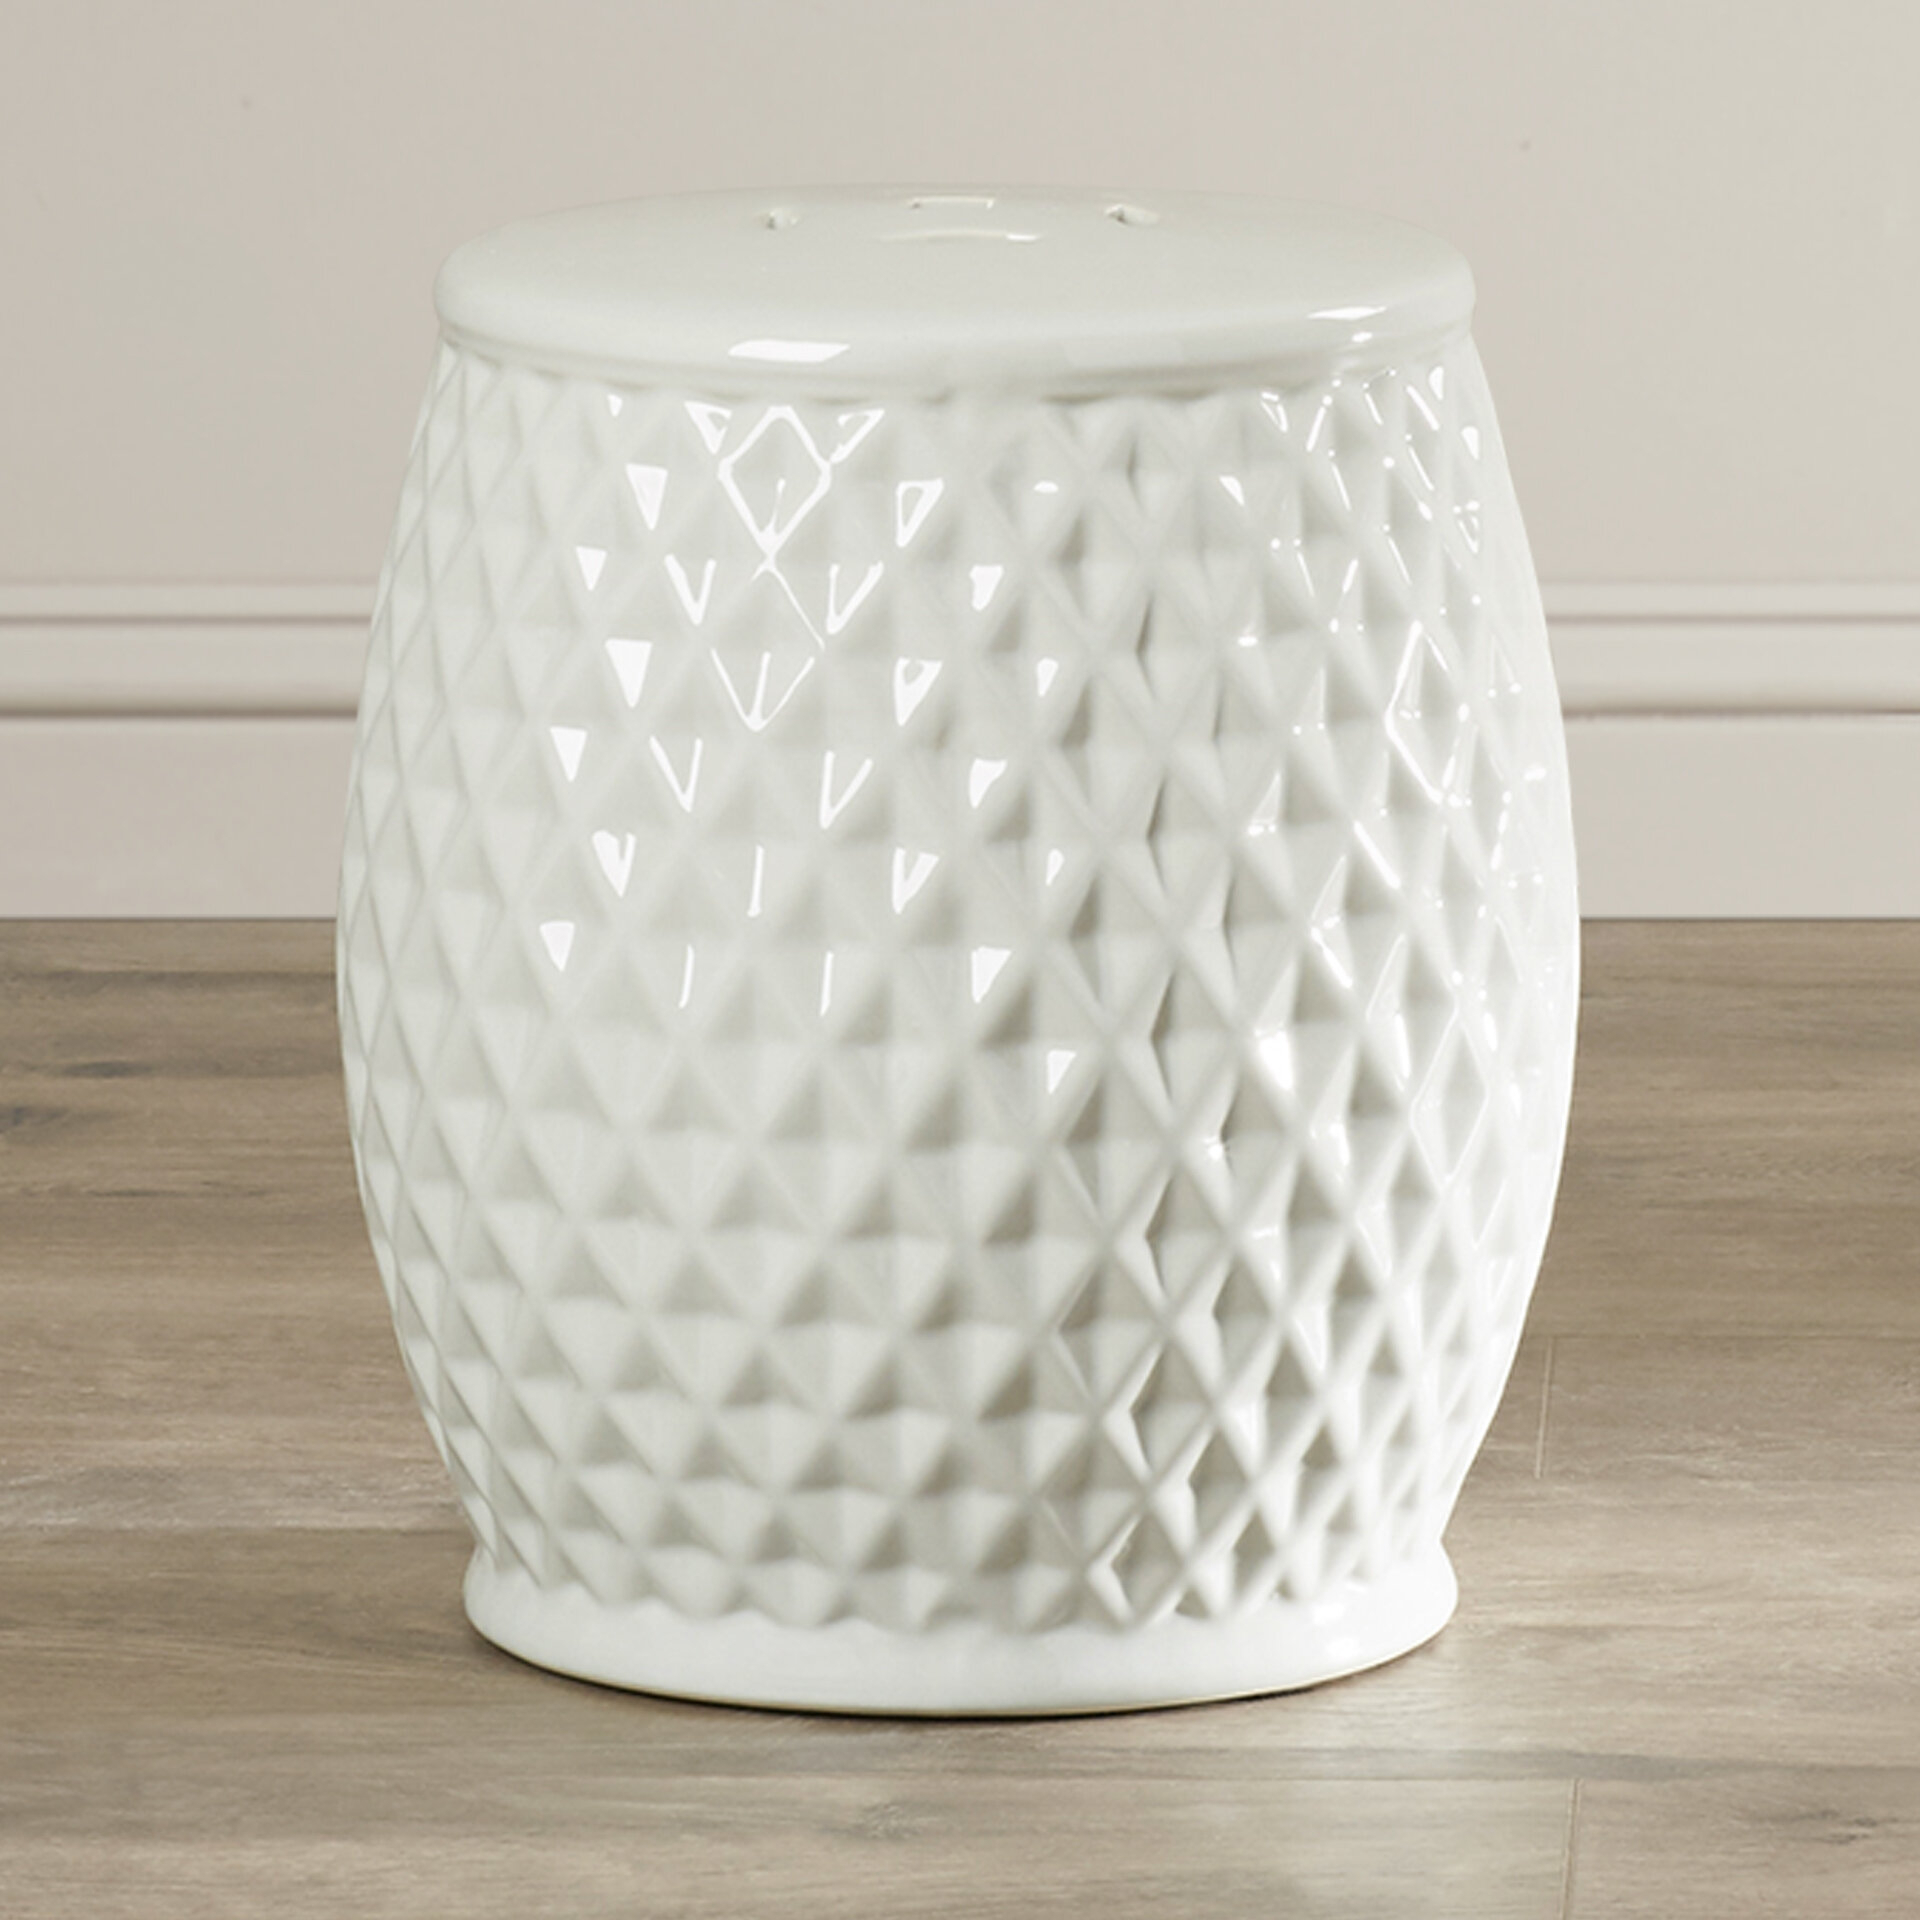 Fonzworth Harlequin Ceramic Garden Stool Throughout Karlov Ceramic Garden Stools (View 11 of 25)